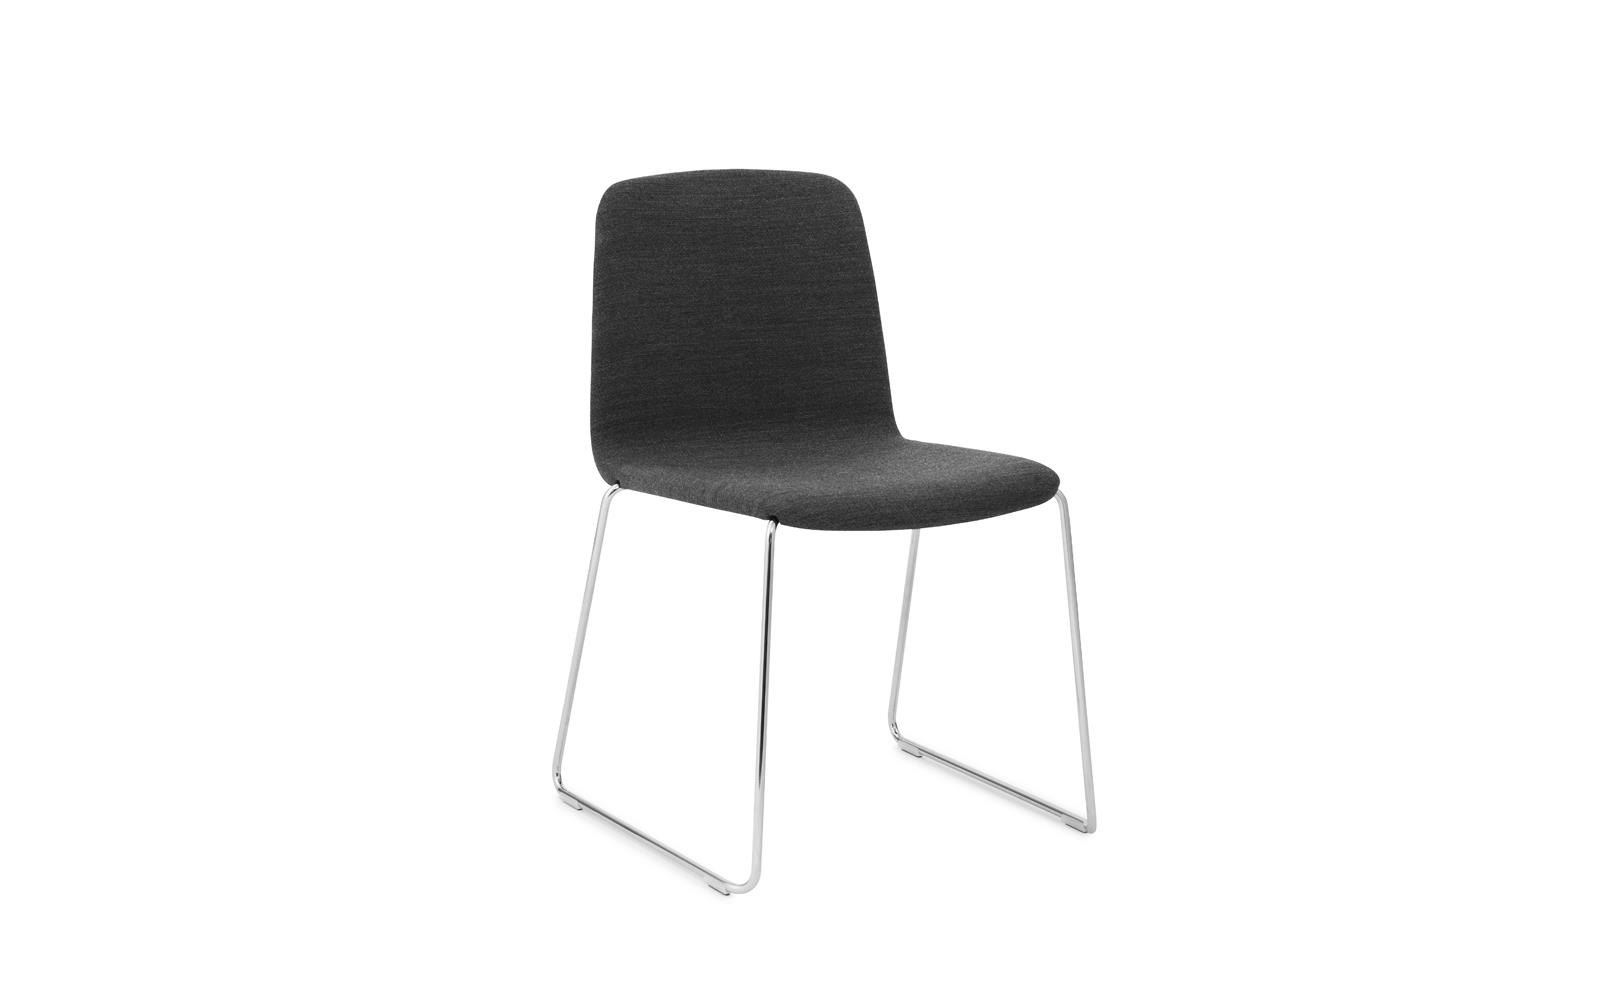 Superbe Just Chair Upholstered Chrome1